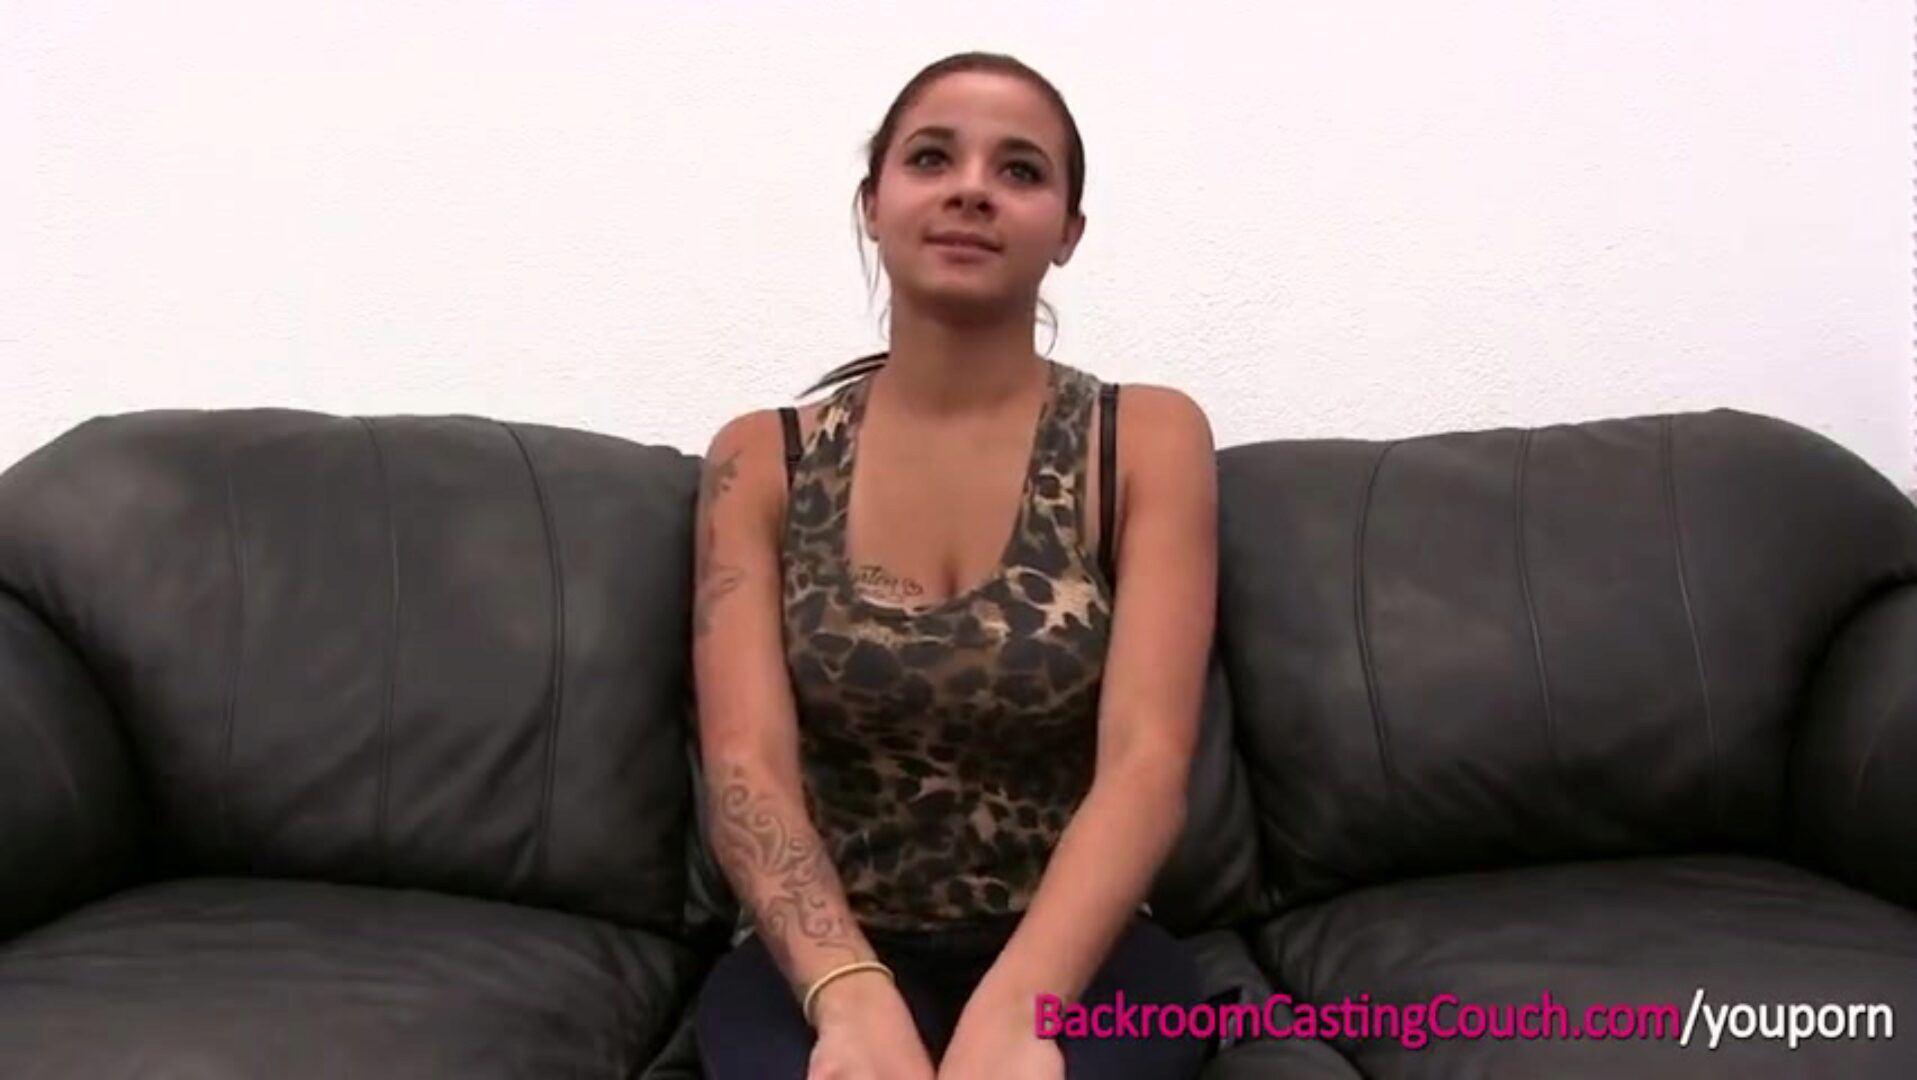 EXCLUSIVE FULL VIDEO - INCREDIBLE AUDREY FROM BACKROOM CASTING COUCH Exclusive! The full movie of the epic Audrey on Backroom Casting Couch.